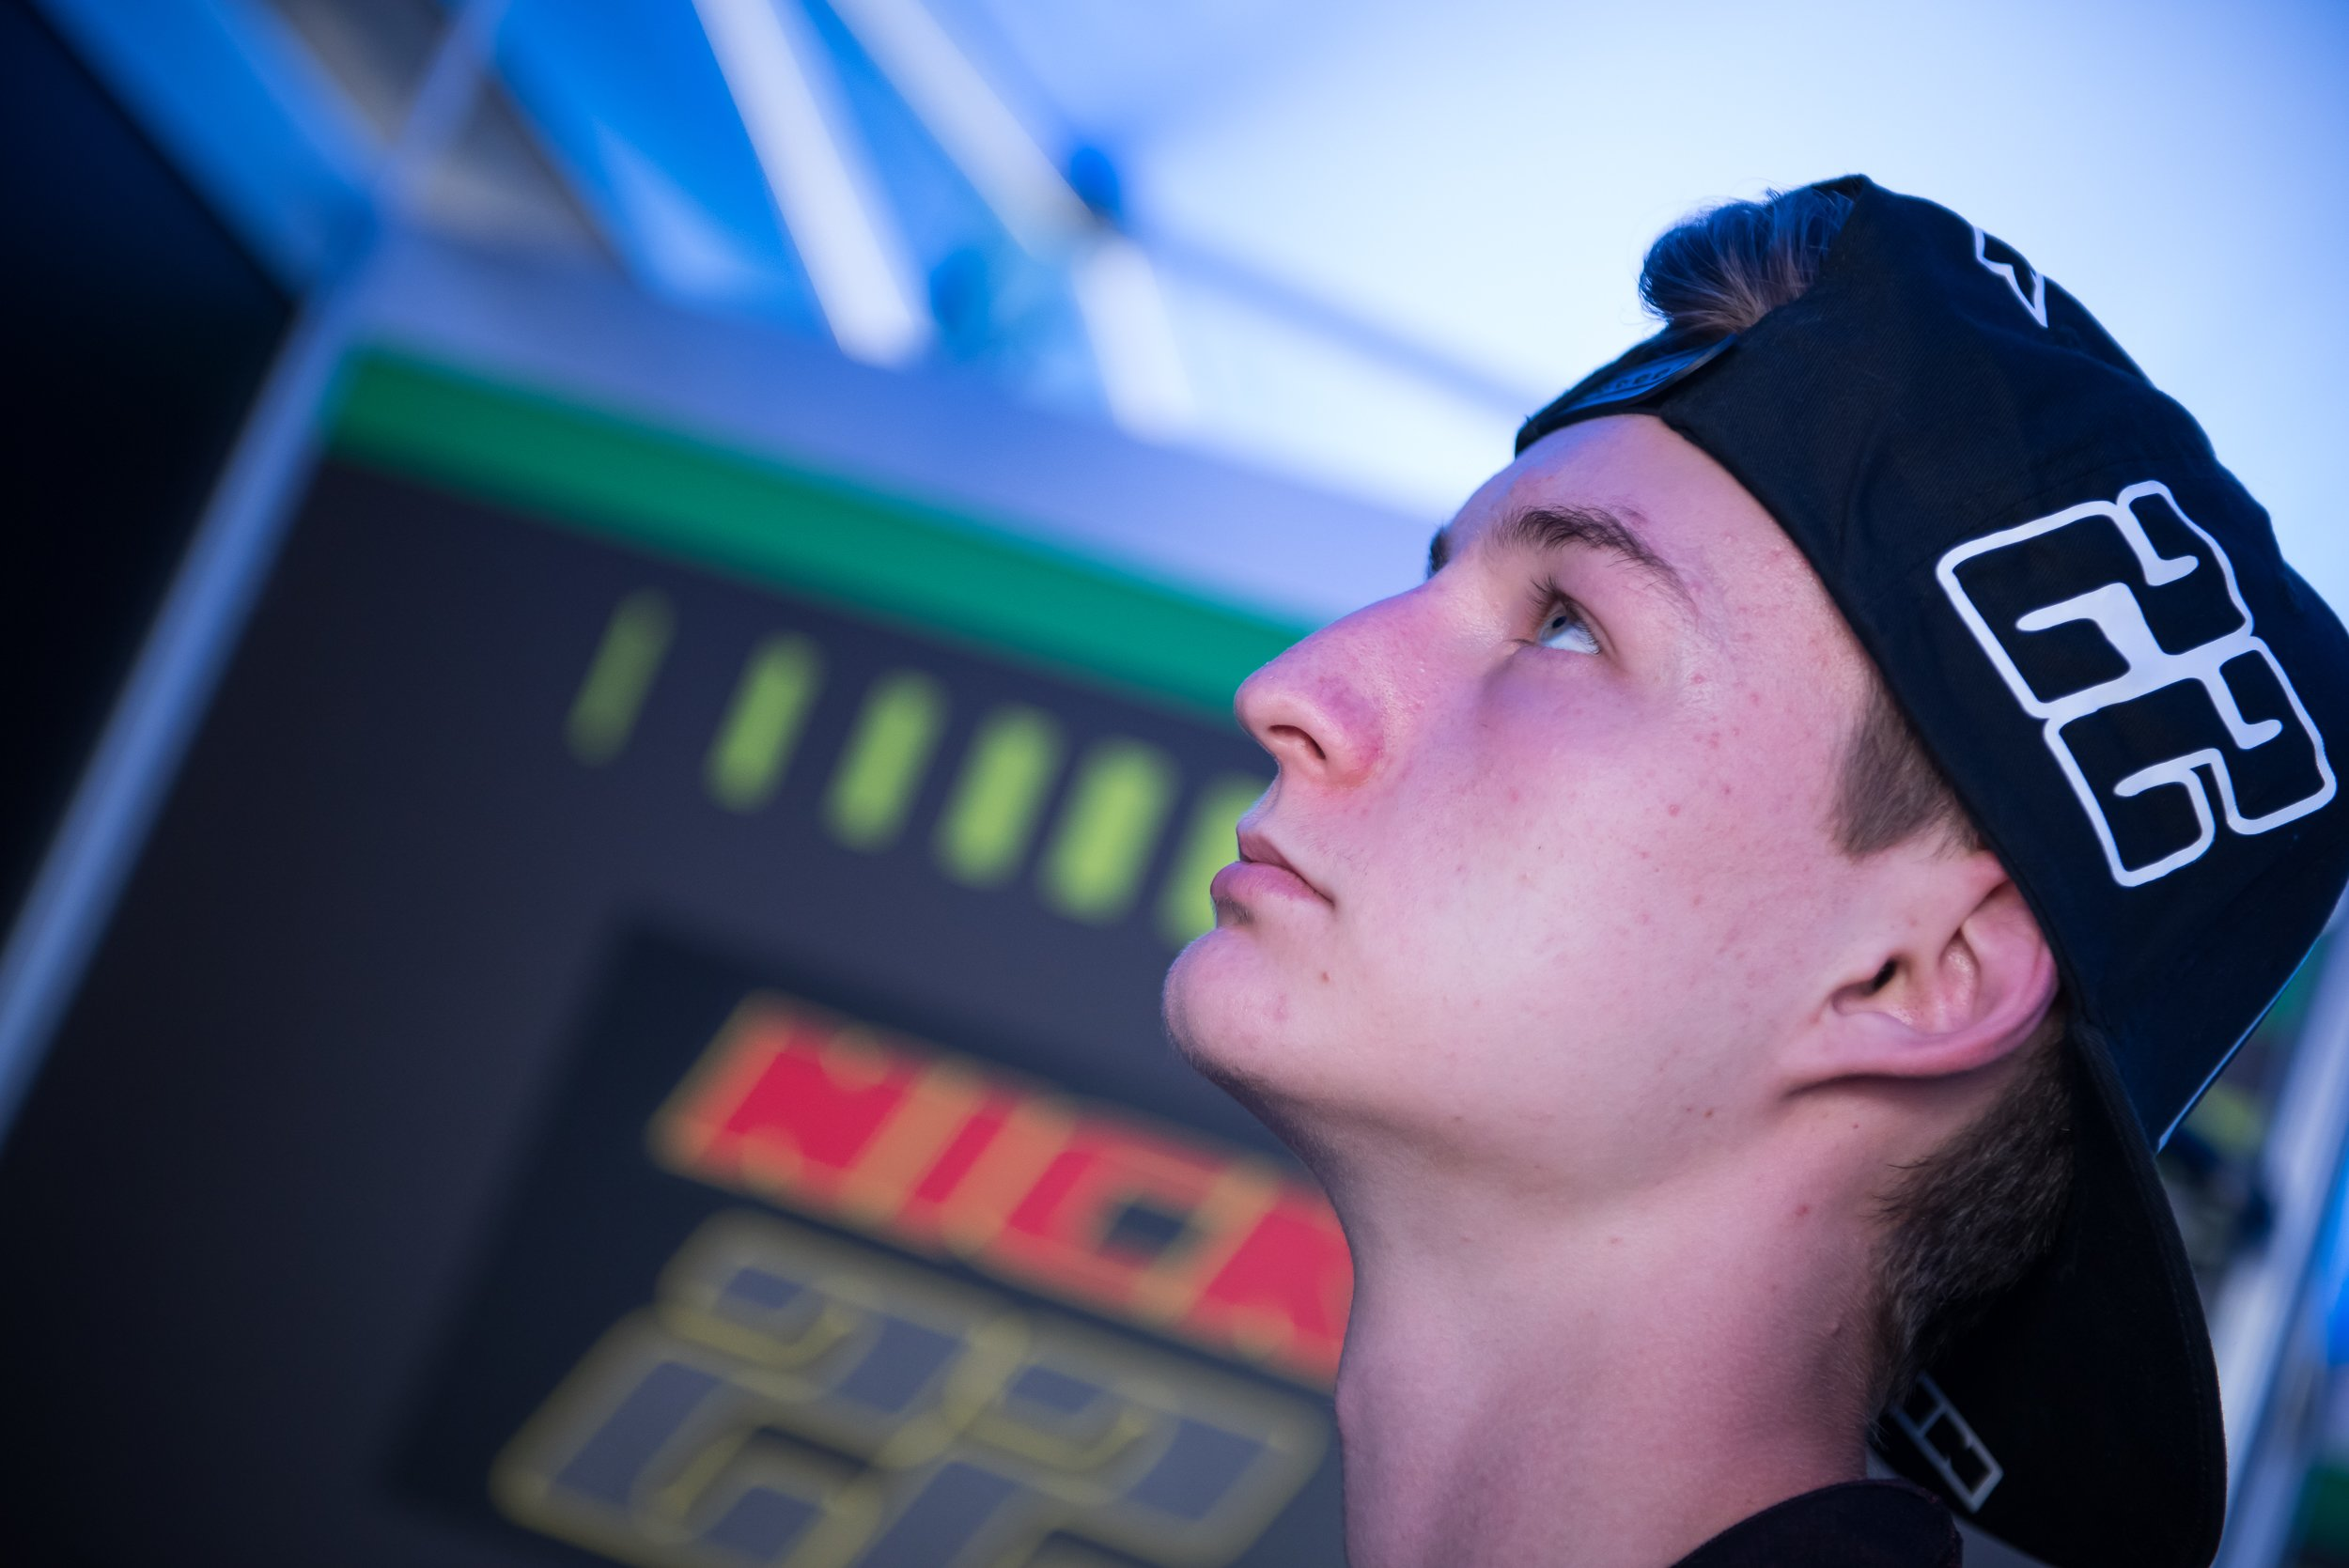 Kalinin achieves top 3 during the first day of the Italian Championship in Misano